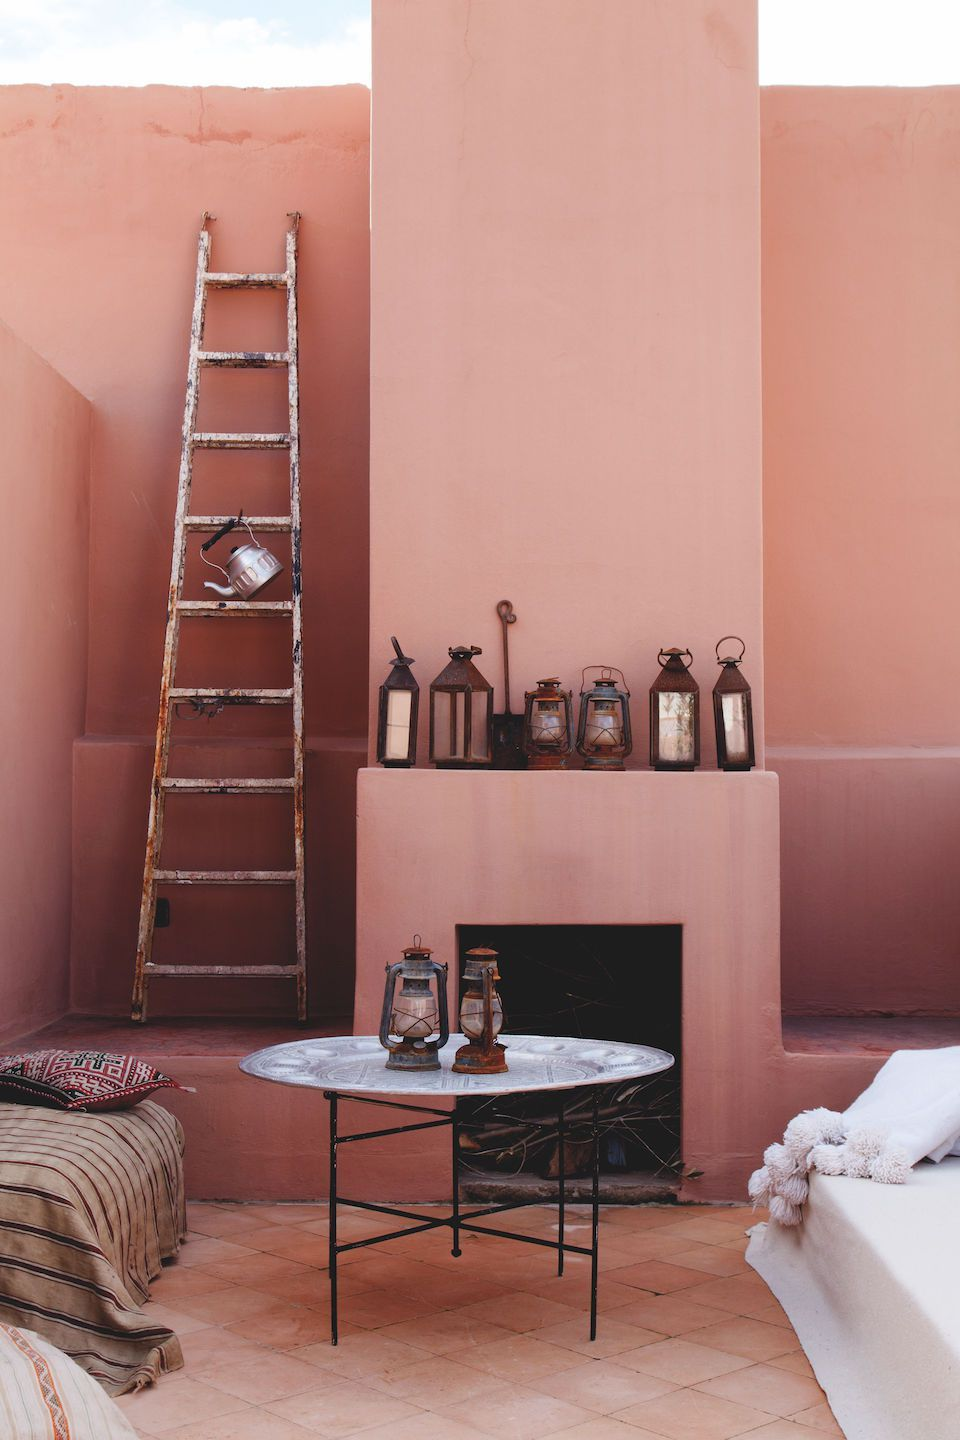 moodboard makeitnow.fr | Pink | Pinterest | Father, Interiors and ...